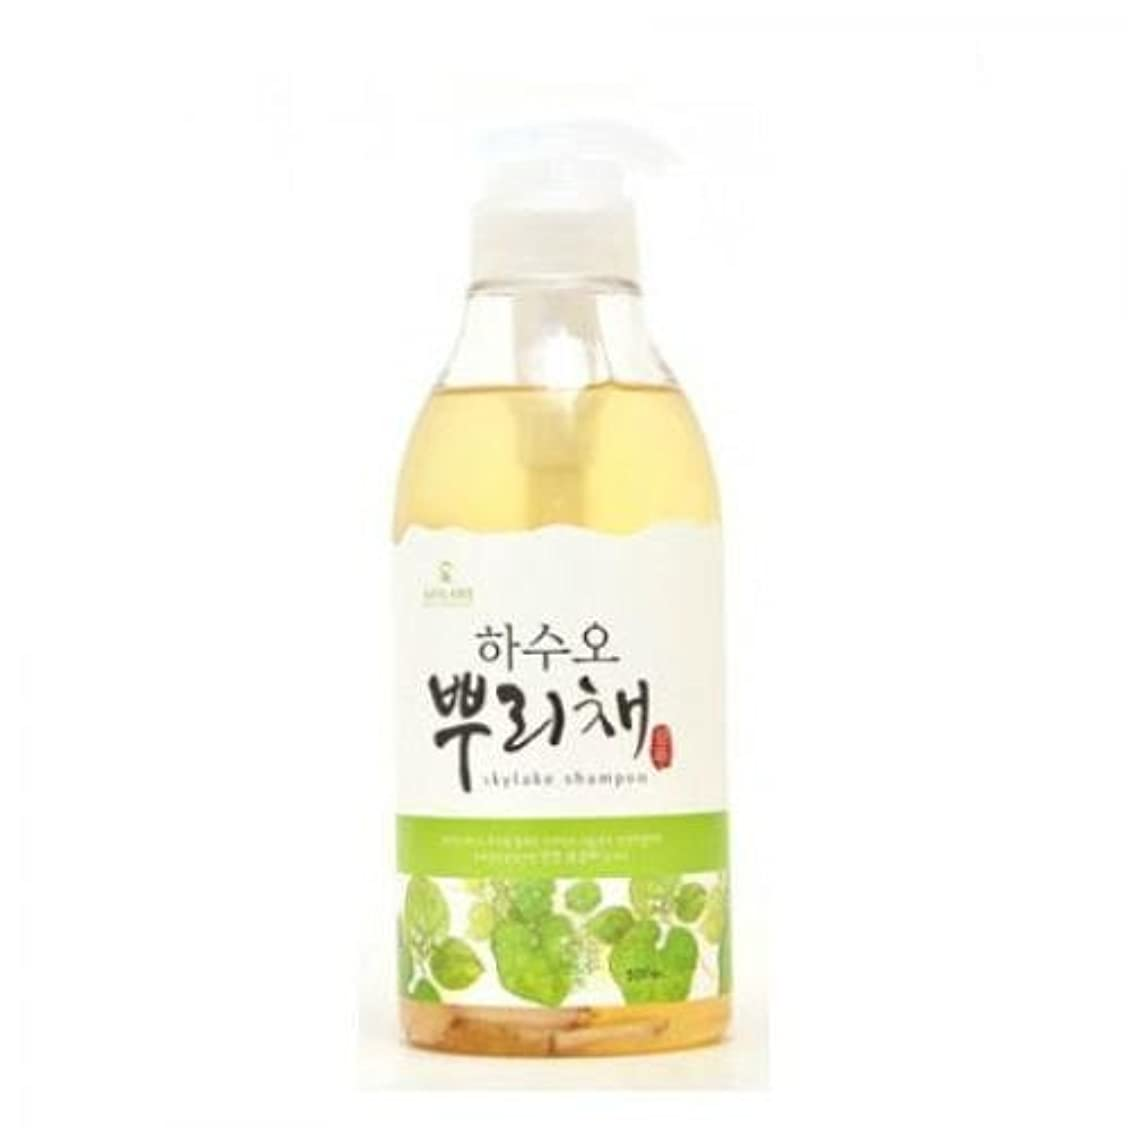 意外レタスプラスチックSkylake Oriental Herb Cool Shampoo (Korean original)